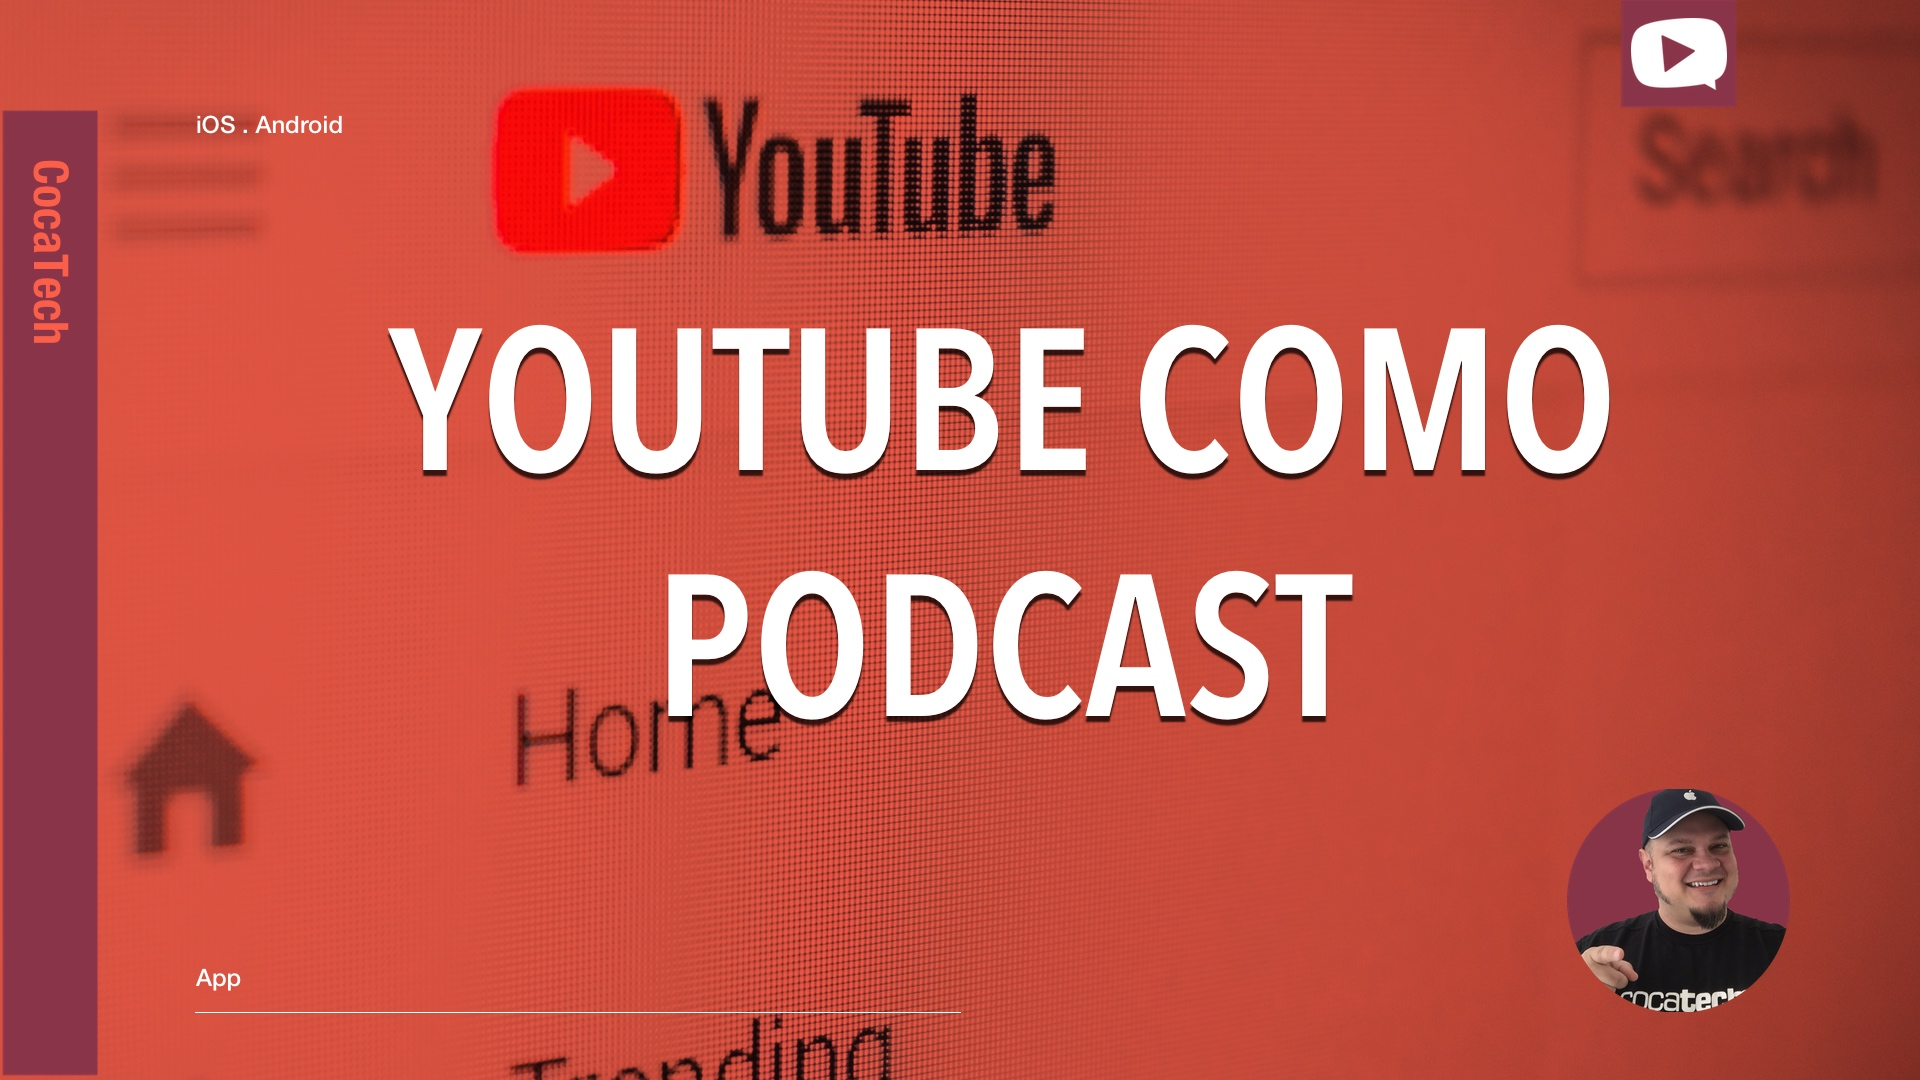 Photo of Como Ouvir/Ver YouTube Como Podcast, Transforme Canais em Feeds RSS